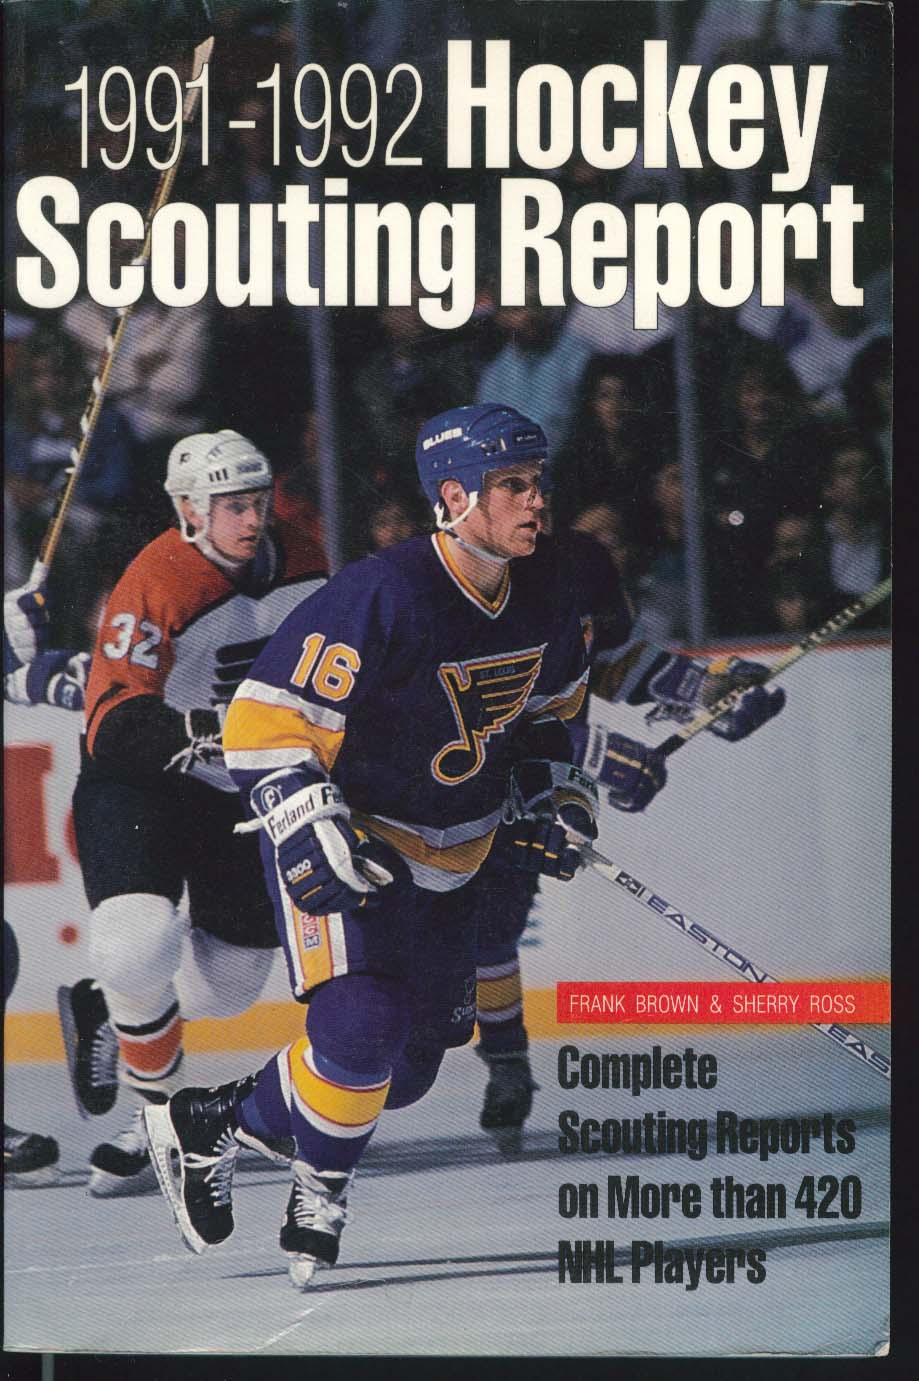 Hockey Scouting Report 1991 1992 by Frank Brown & Sherry Ross